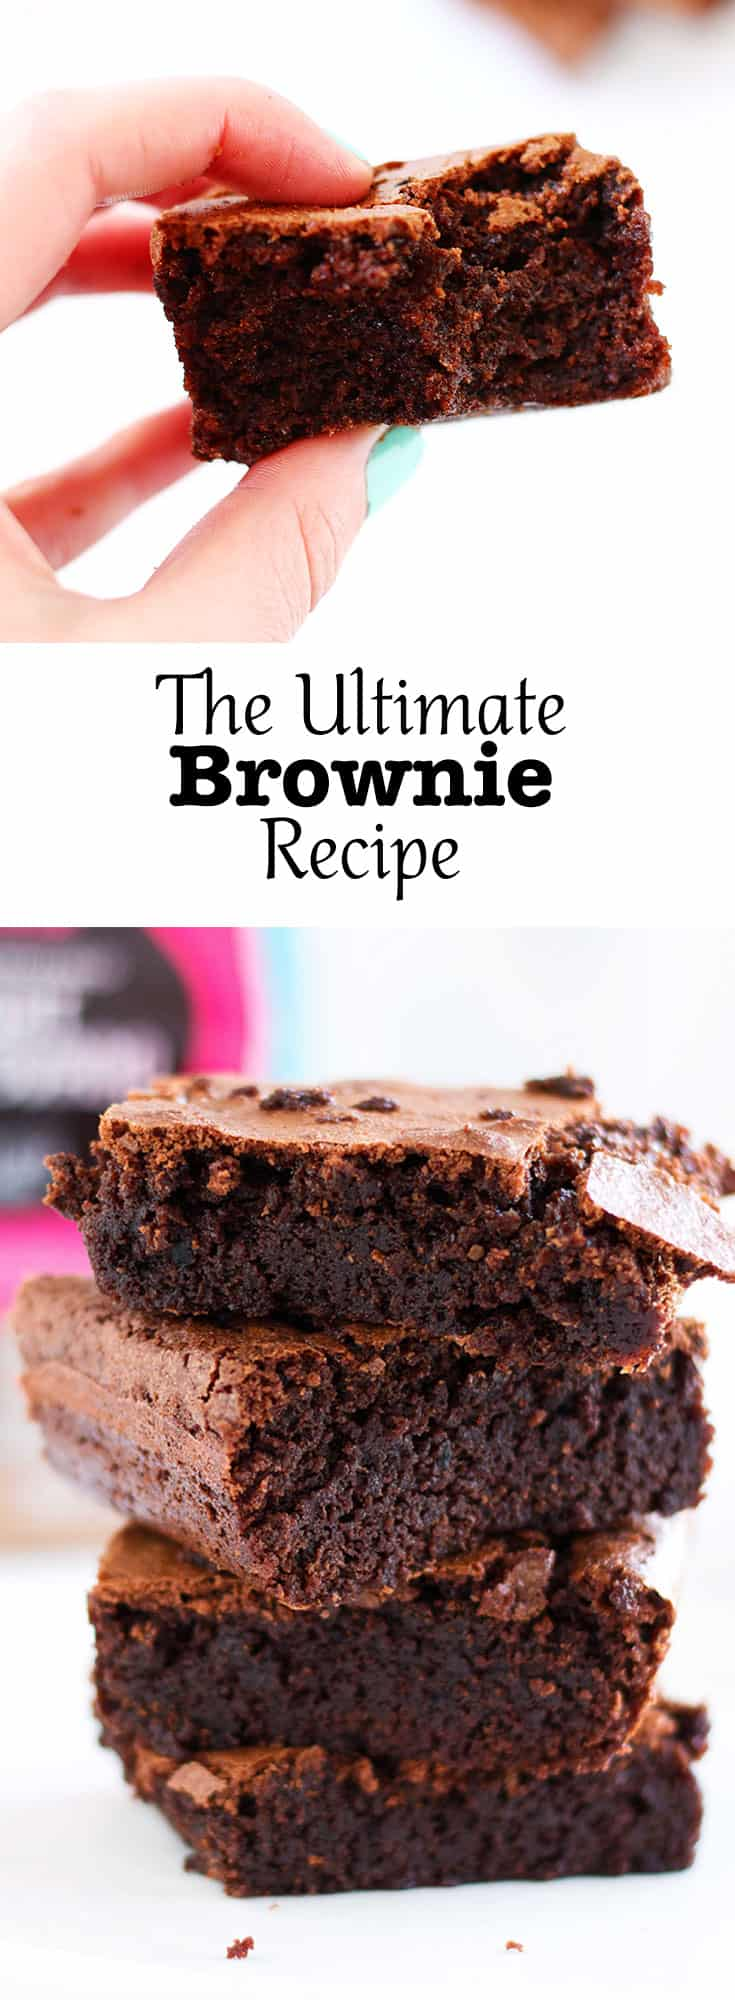 The Ultimate Brownie Recipe is the only brownie recipe you will ever need. The brownies are thick, chewy and super chocolatey. Made with unrefined sugars.